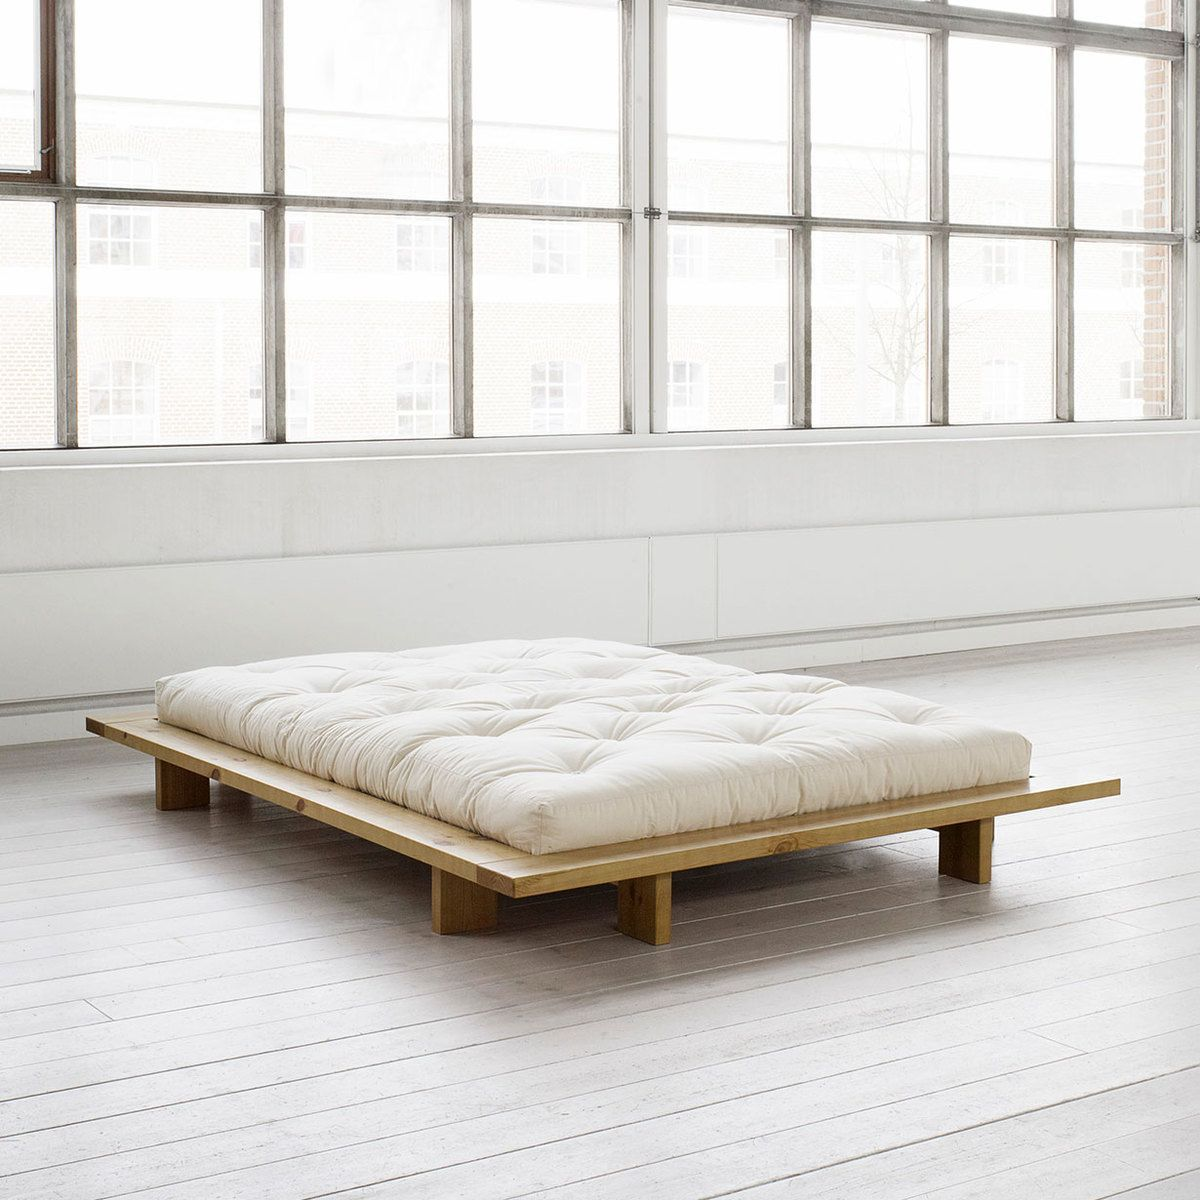 The Karup Japan Bed Is A Simplistic Model One Of Our Favorite And Best Selling Model Mass Modern Minimalist